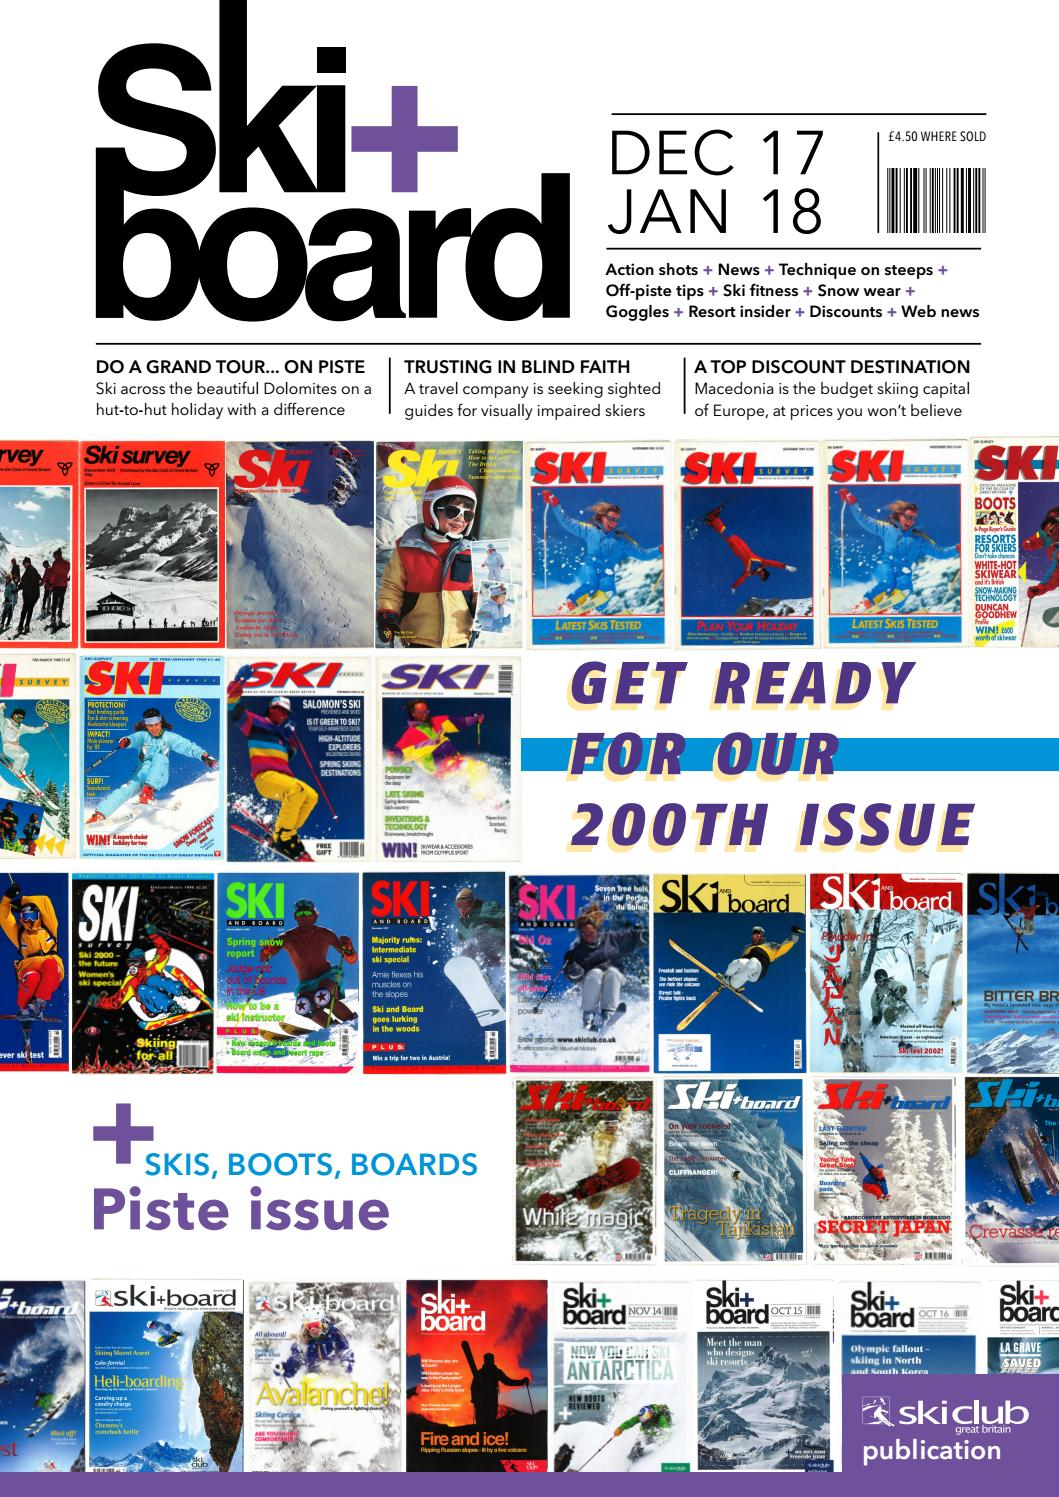 Ski+board December 2017January 2018 by Ski Club of Great